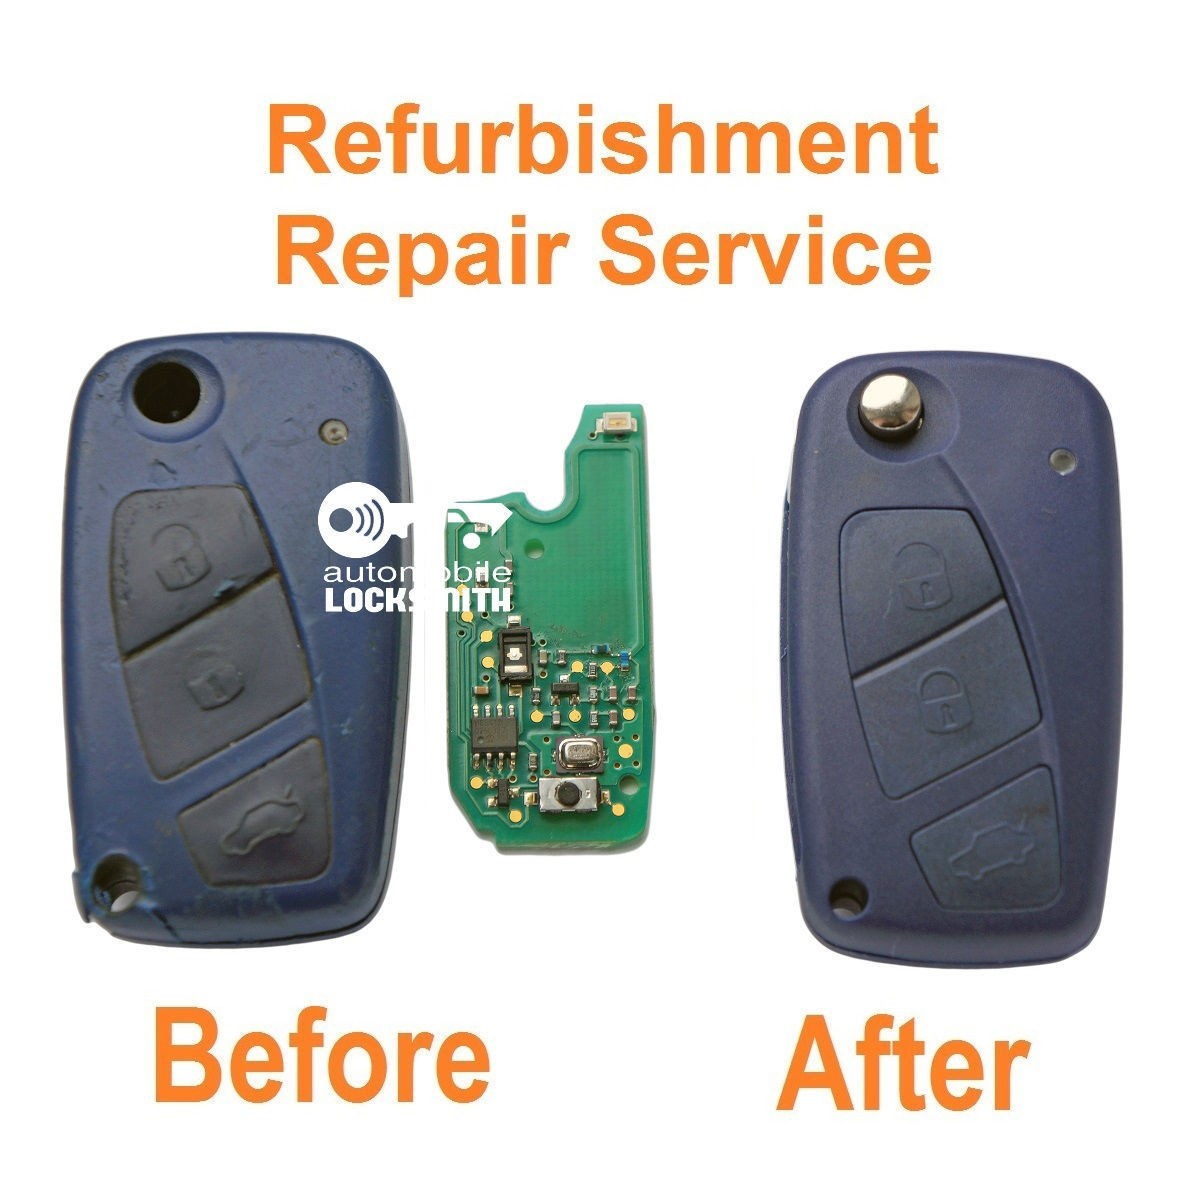 Repair service for Citroen Nemo Multispace 3 Button remote key fob